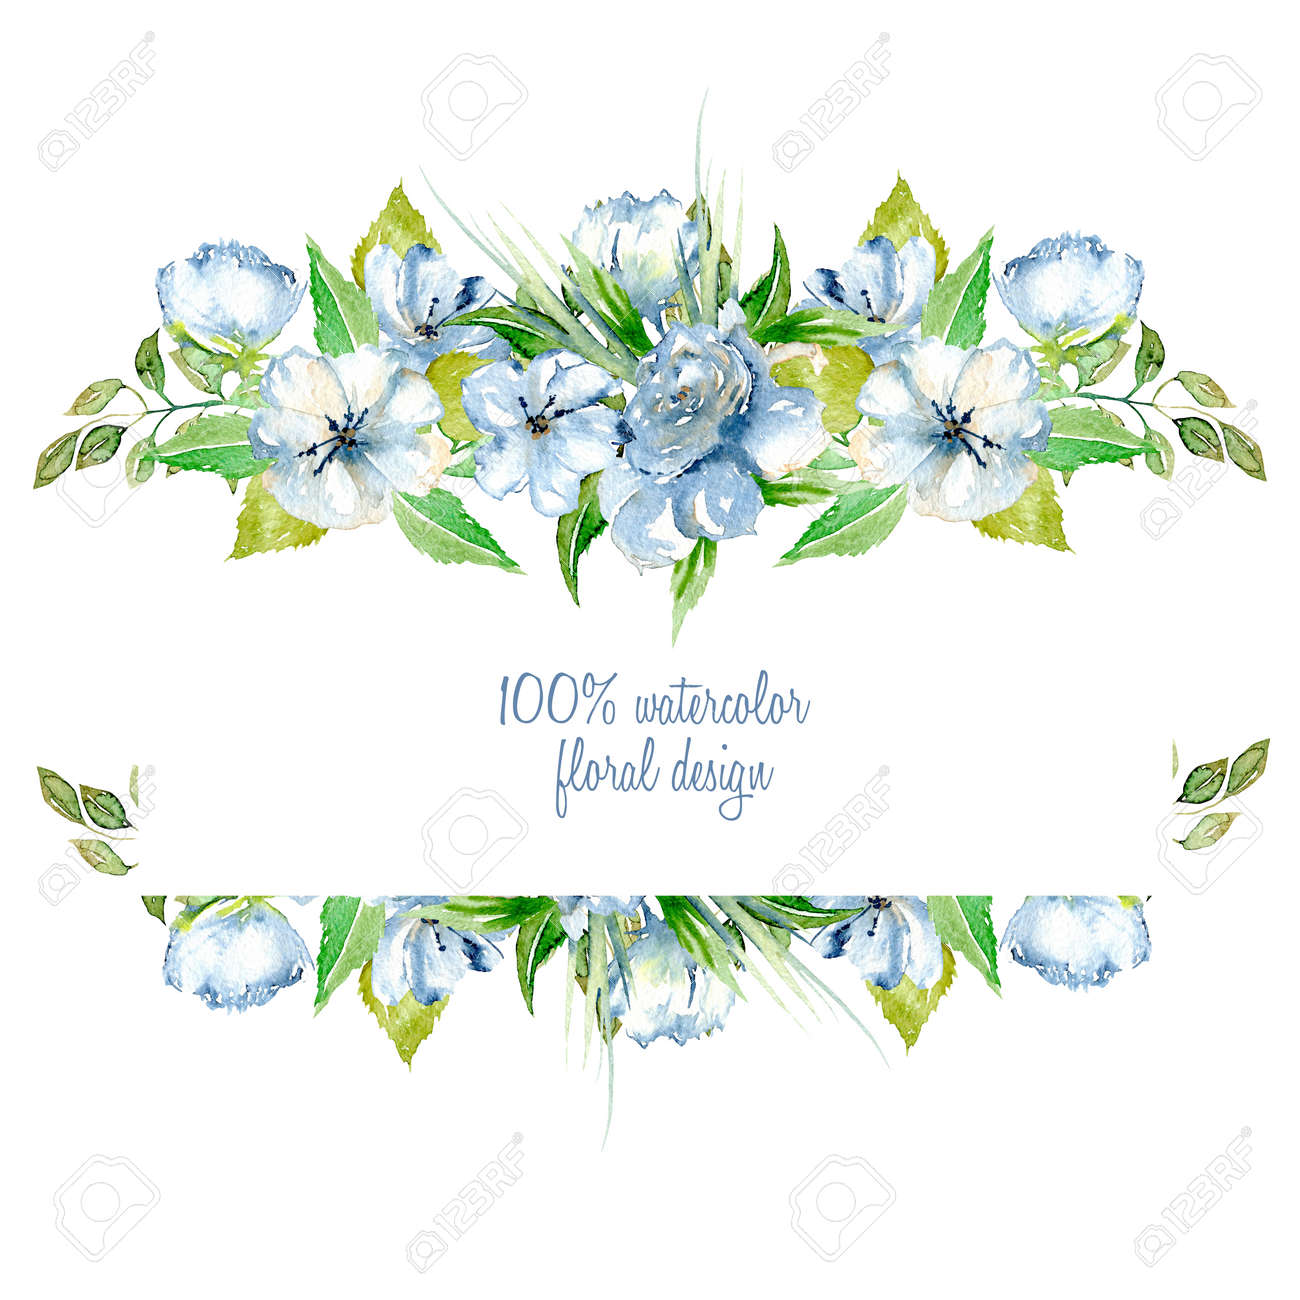 Frame Border With Simple Watercolor Blue Wildflowers And Green Fresh Leaves Hand Painted On A